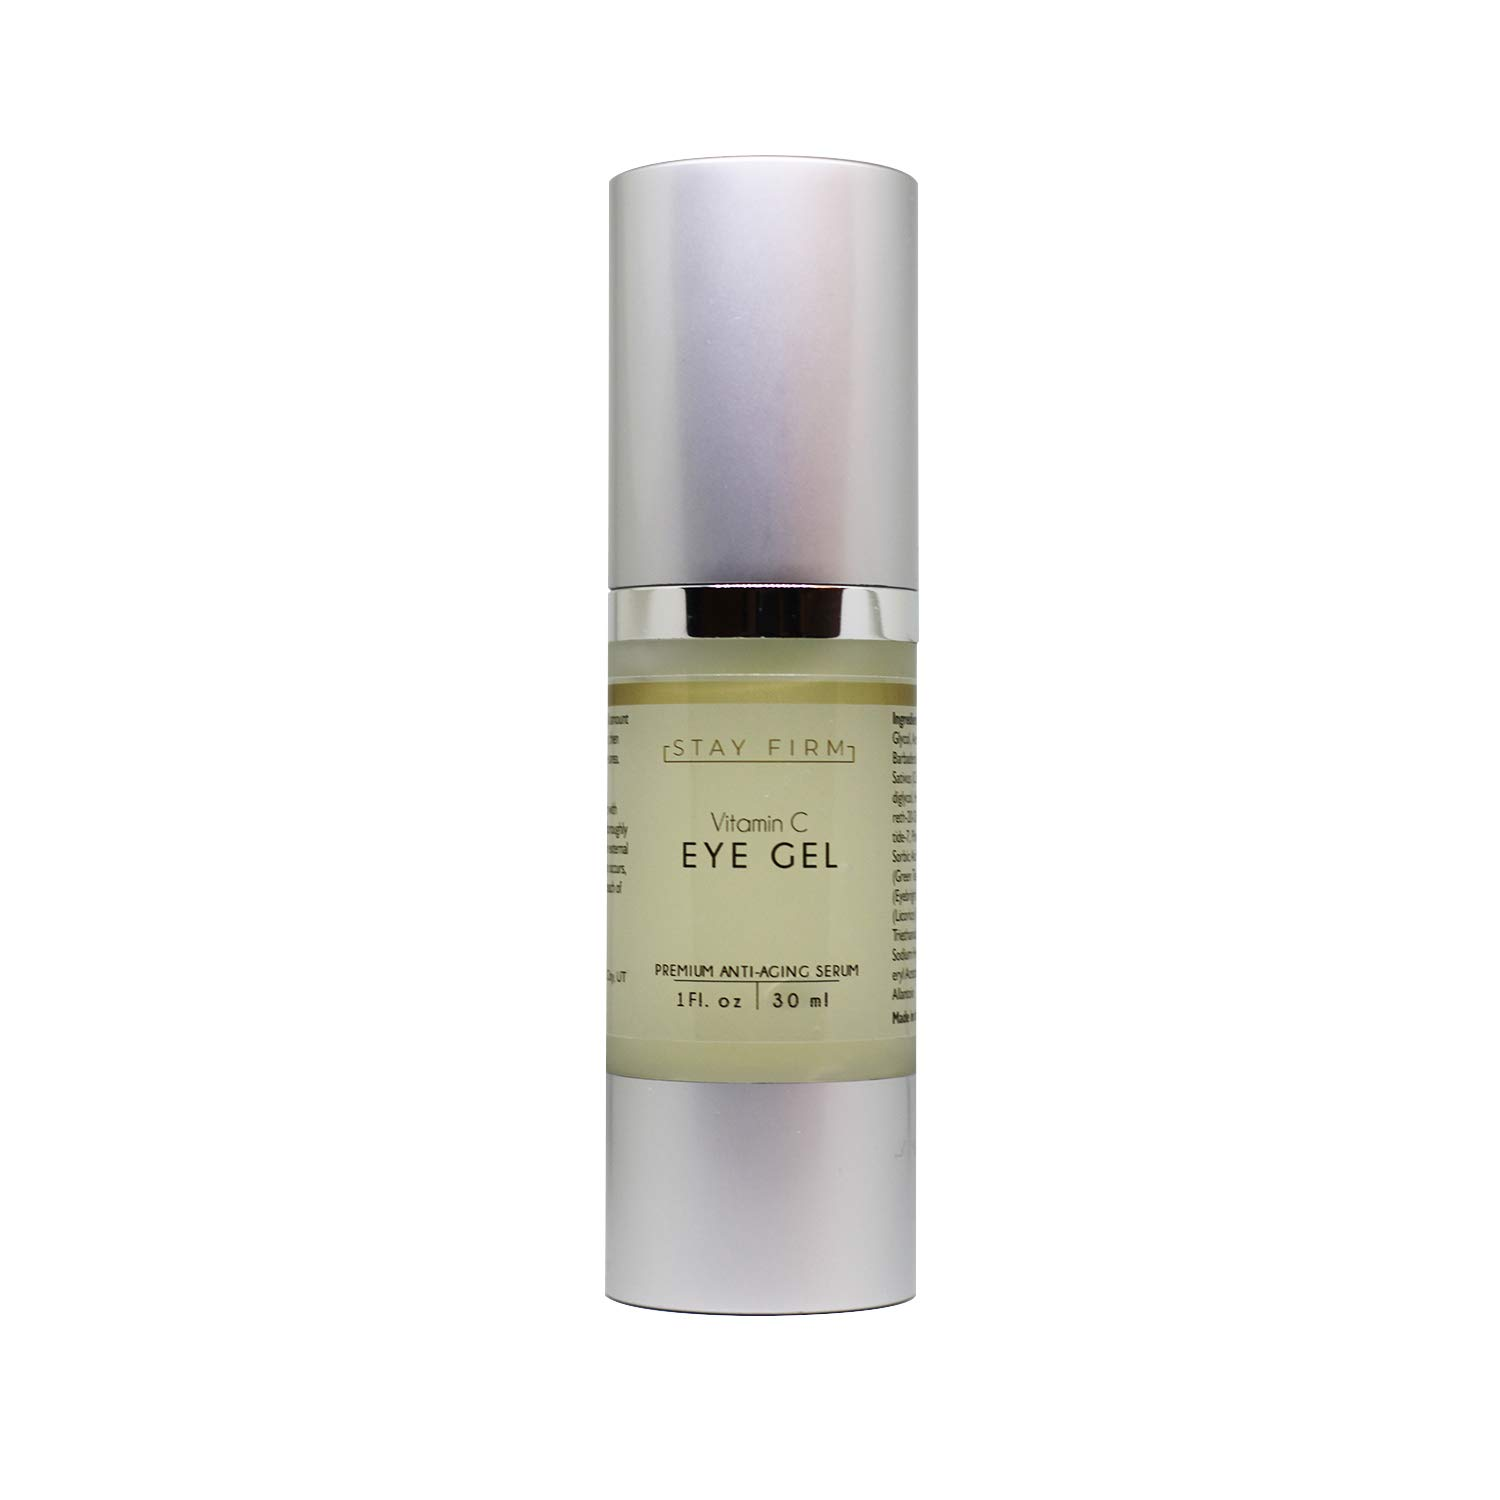 Vitamin C Eye Gel with Collagen-Building Properties to Reduce the Appearance of Under-Eye Dark Circles and Eye Wrinkles, Serum for Eye Puffiness - Stay Company